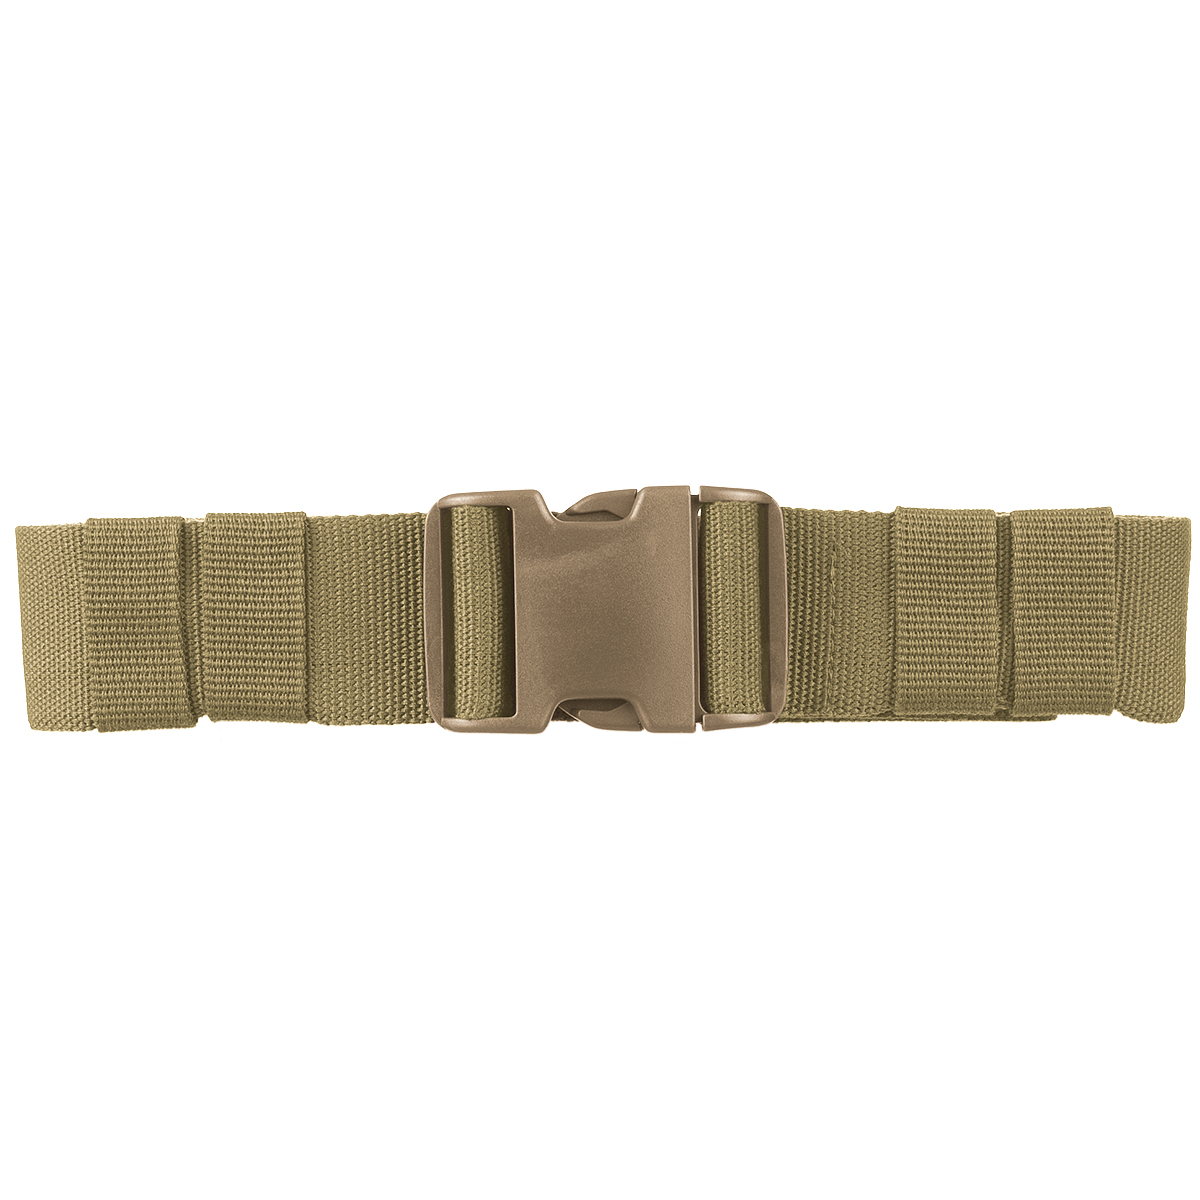 Details about MIL TEC TACTICAL HIKING ARMY MENS BELT 50MM QUICK RELEASE BUCKLE RIGGER COYOTE